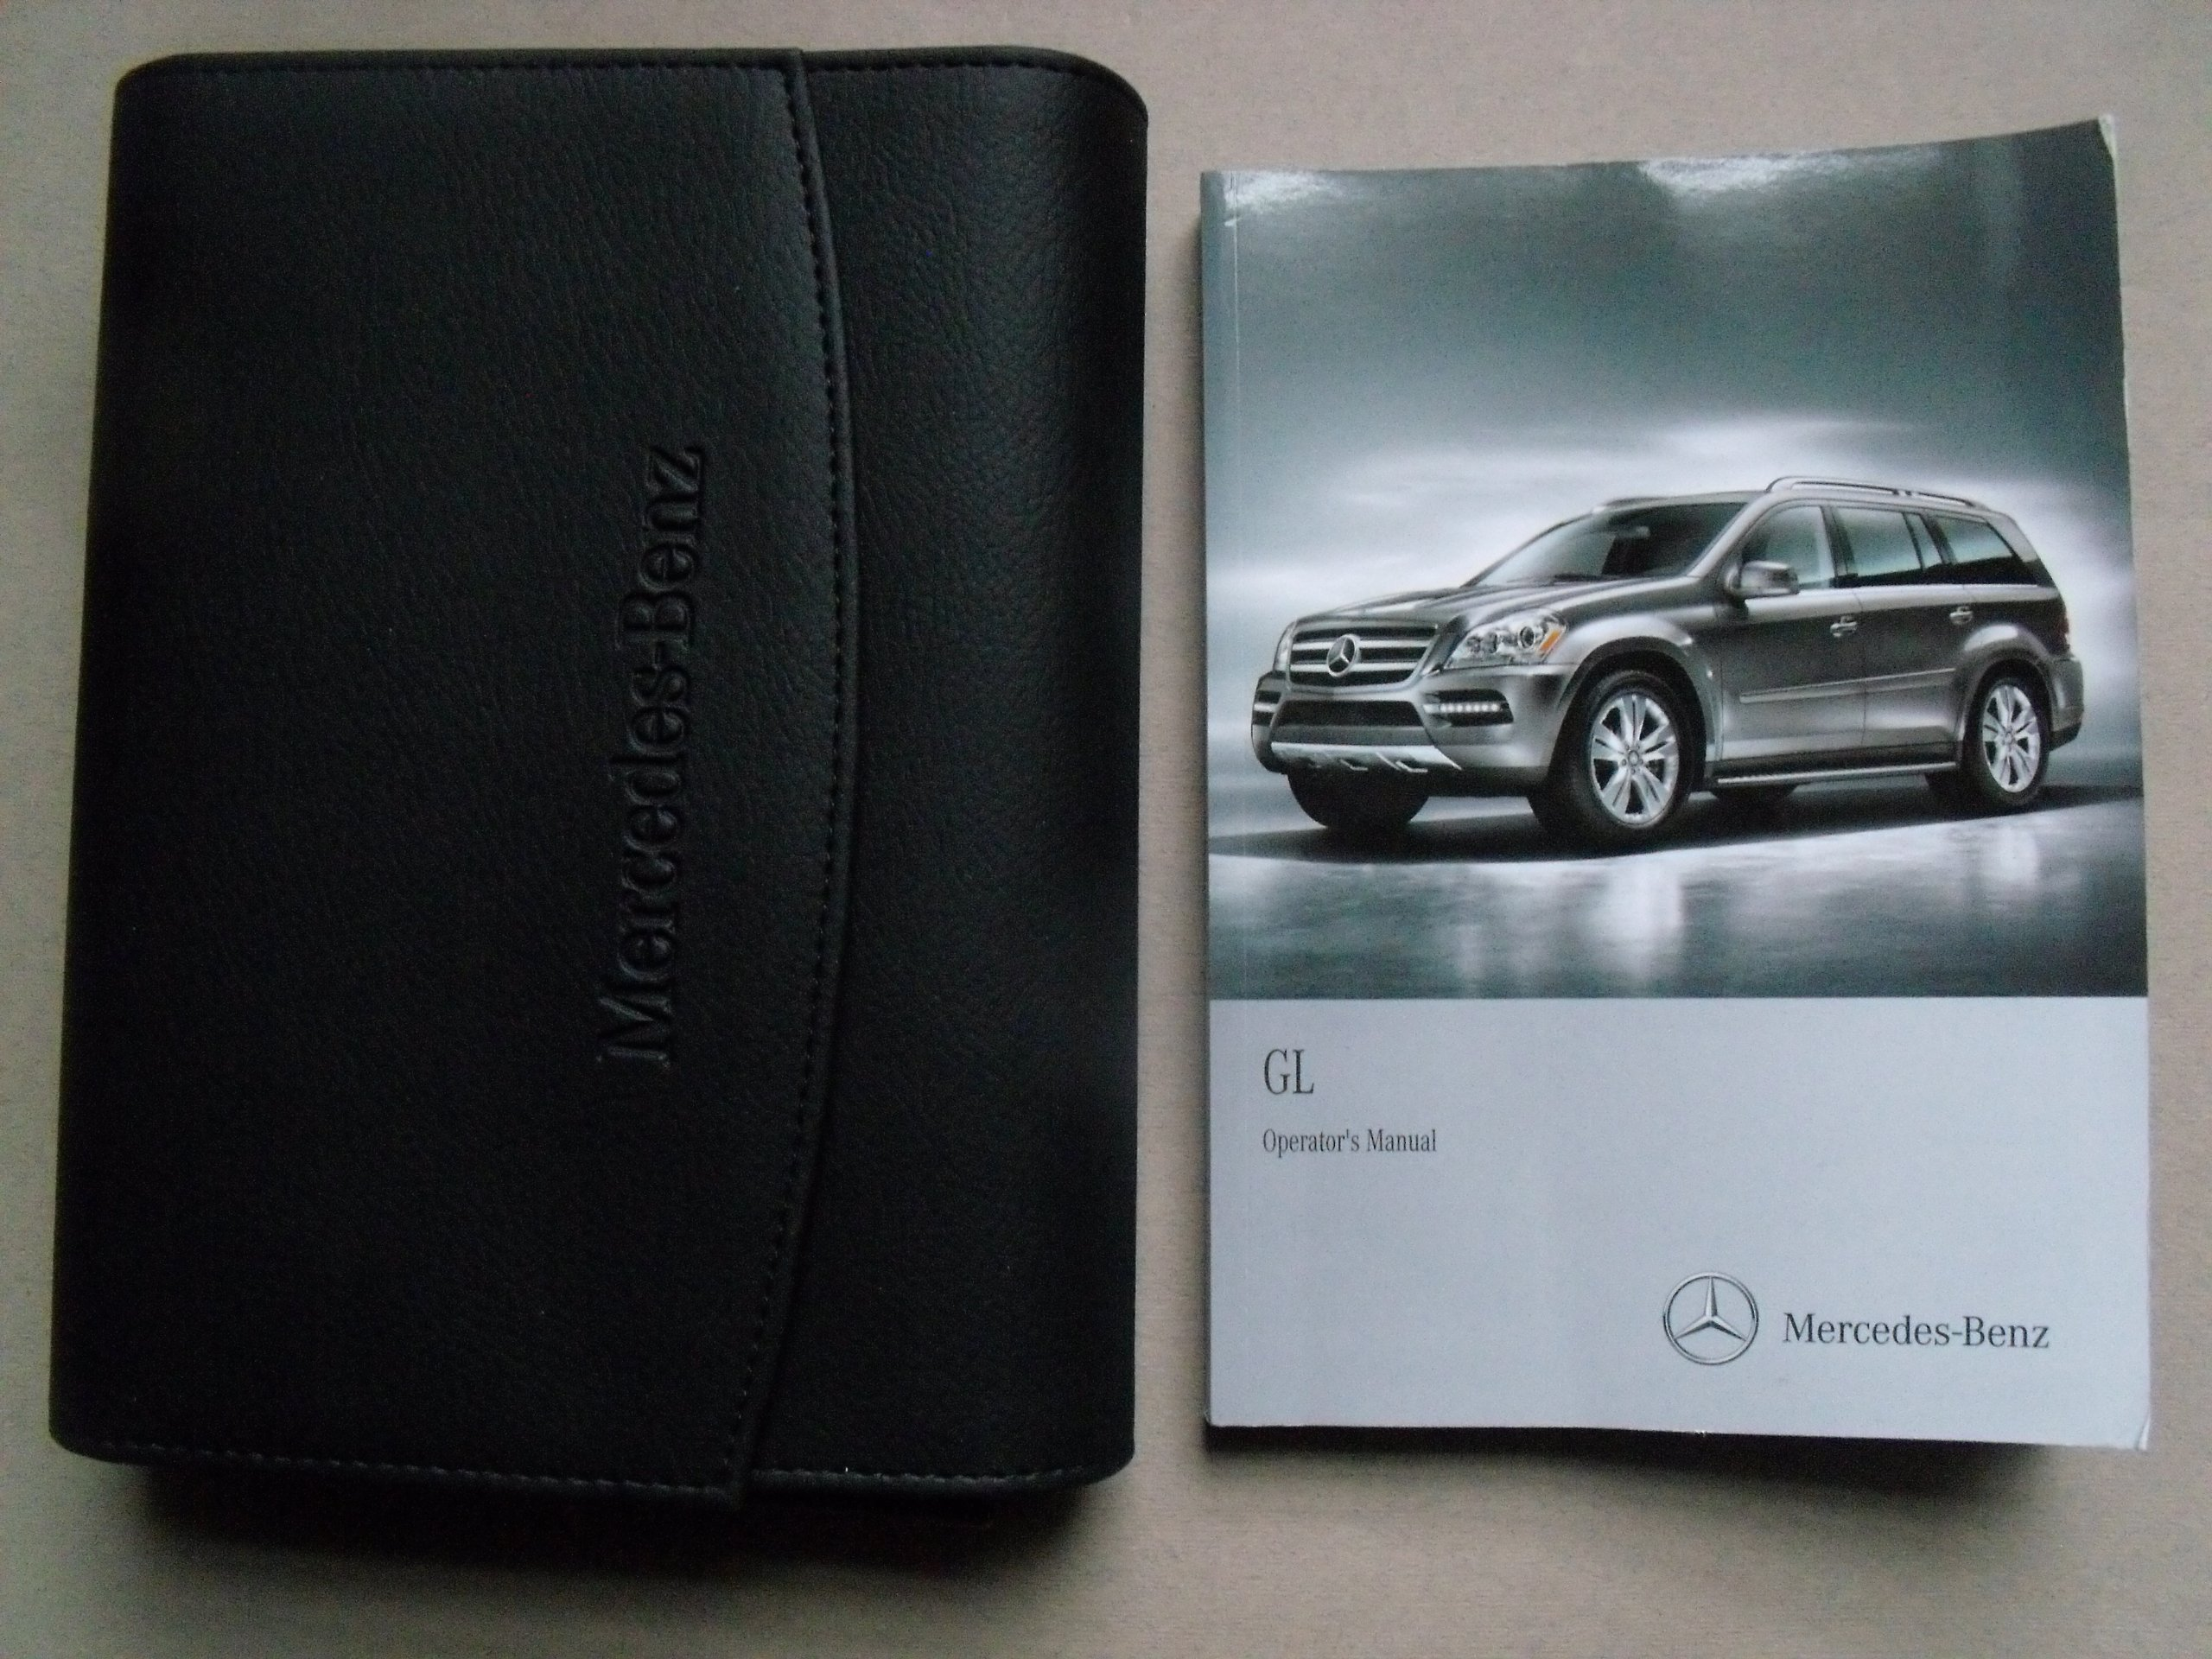 Gl450 manual array 2012 mercedes benz gl owners manual guide book mercedes benz rh amazon com fandeluxe Image collections